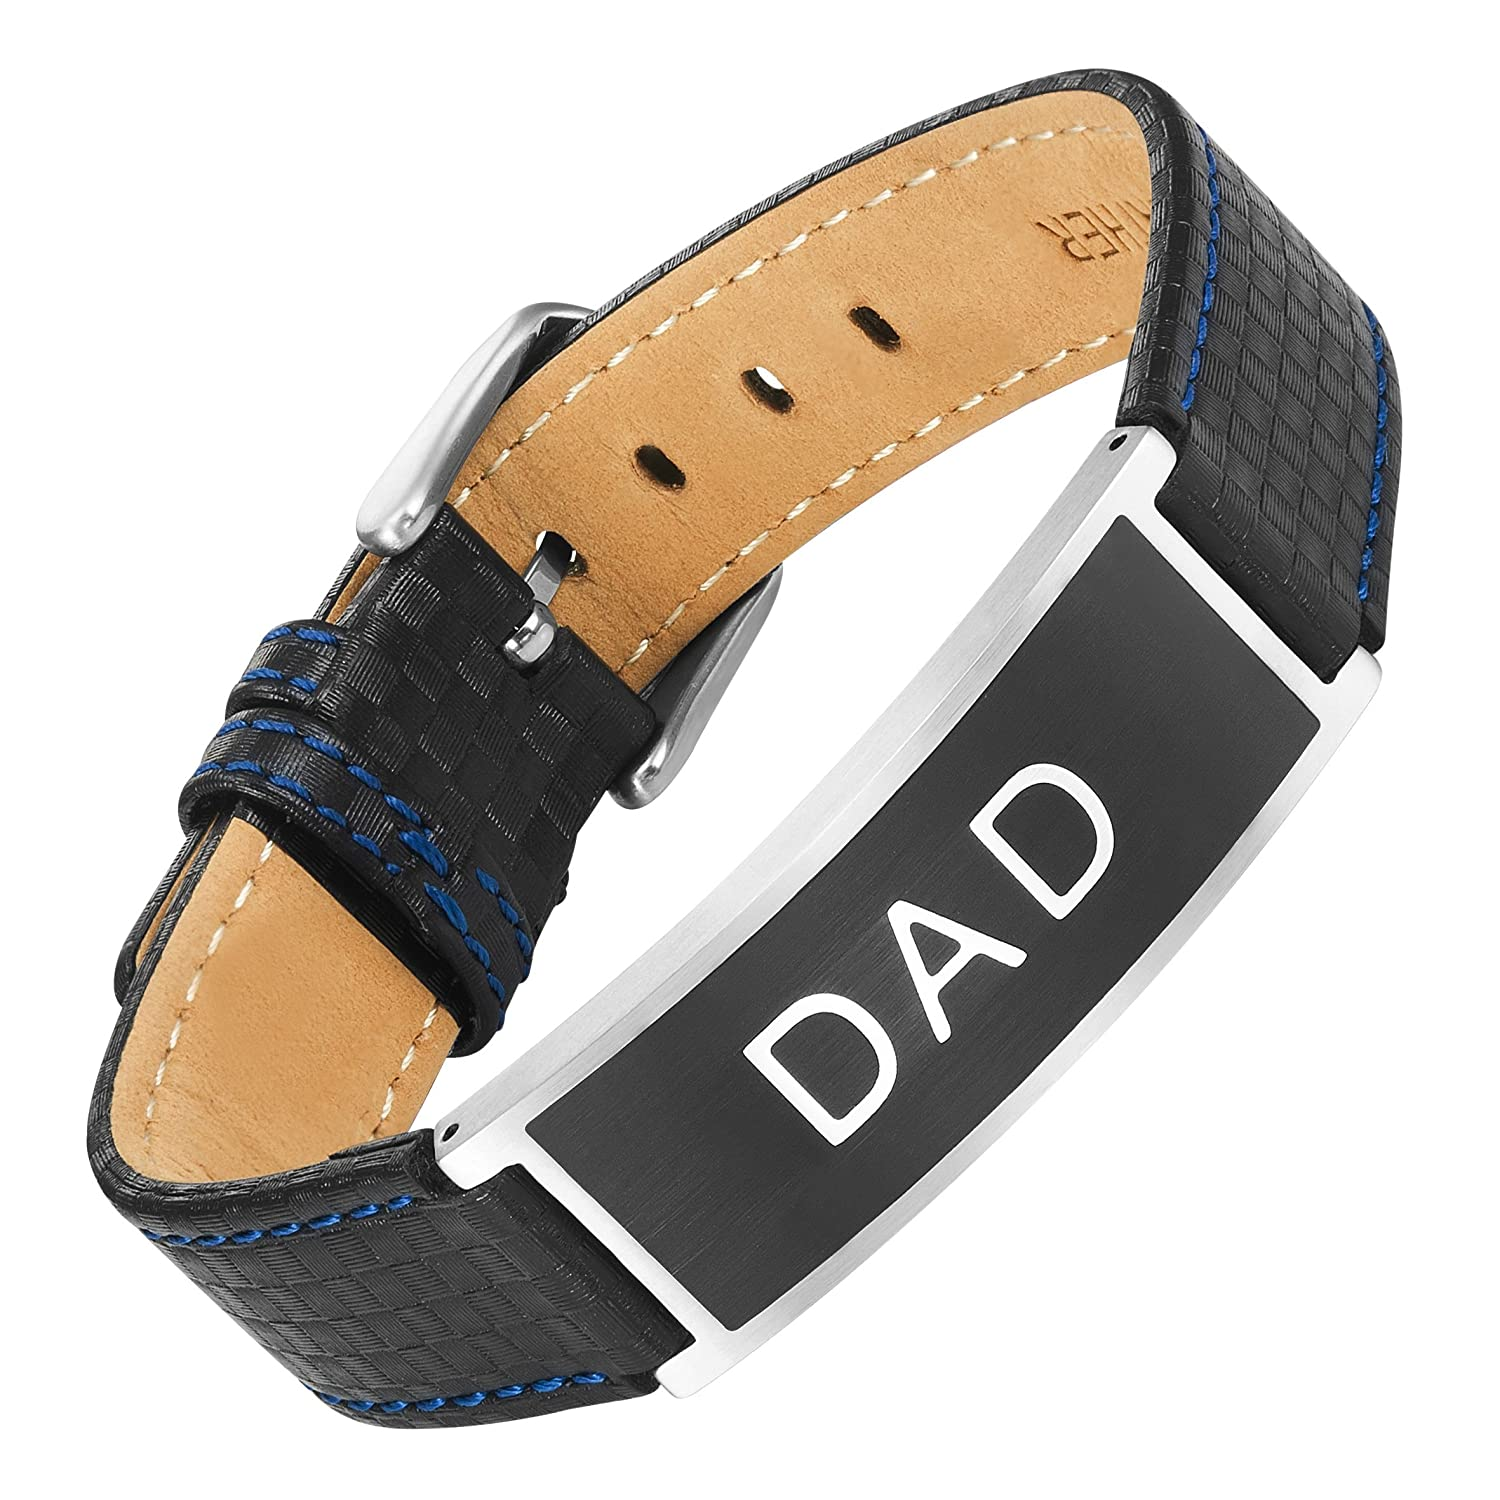 DAD Carbon Fiber Effect Genuine Leather Bracelet Engraved Love You Dad with Blue Top Stitching Willis Judd L0160